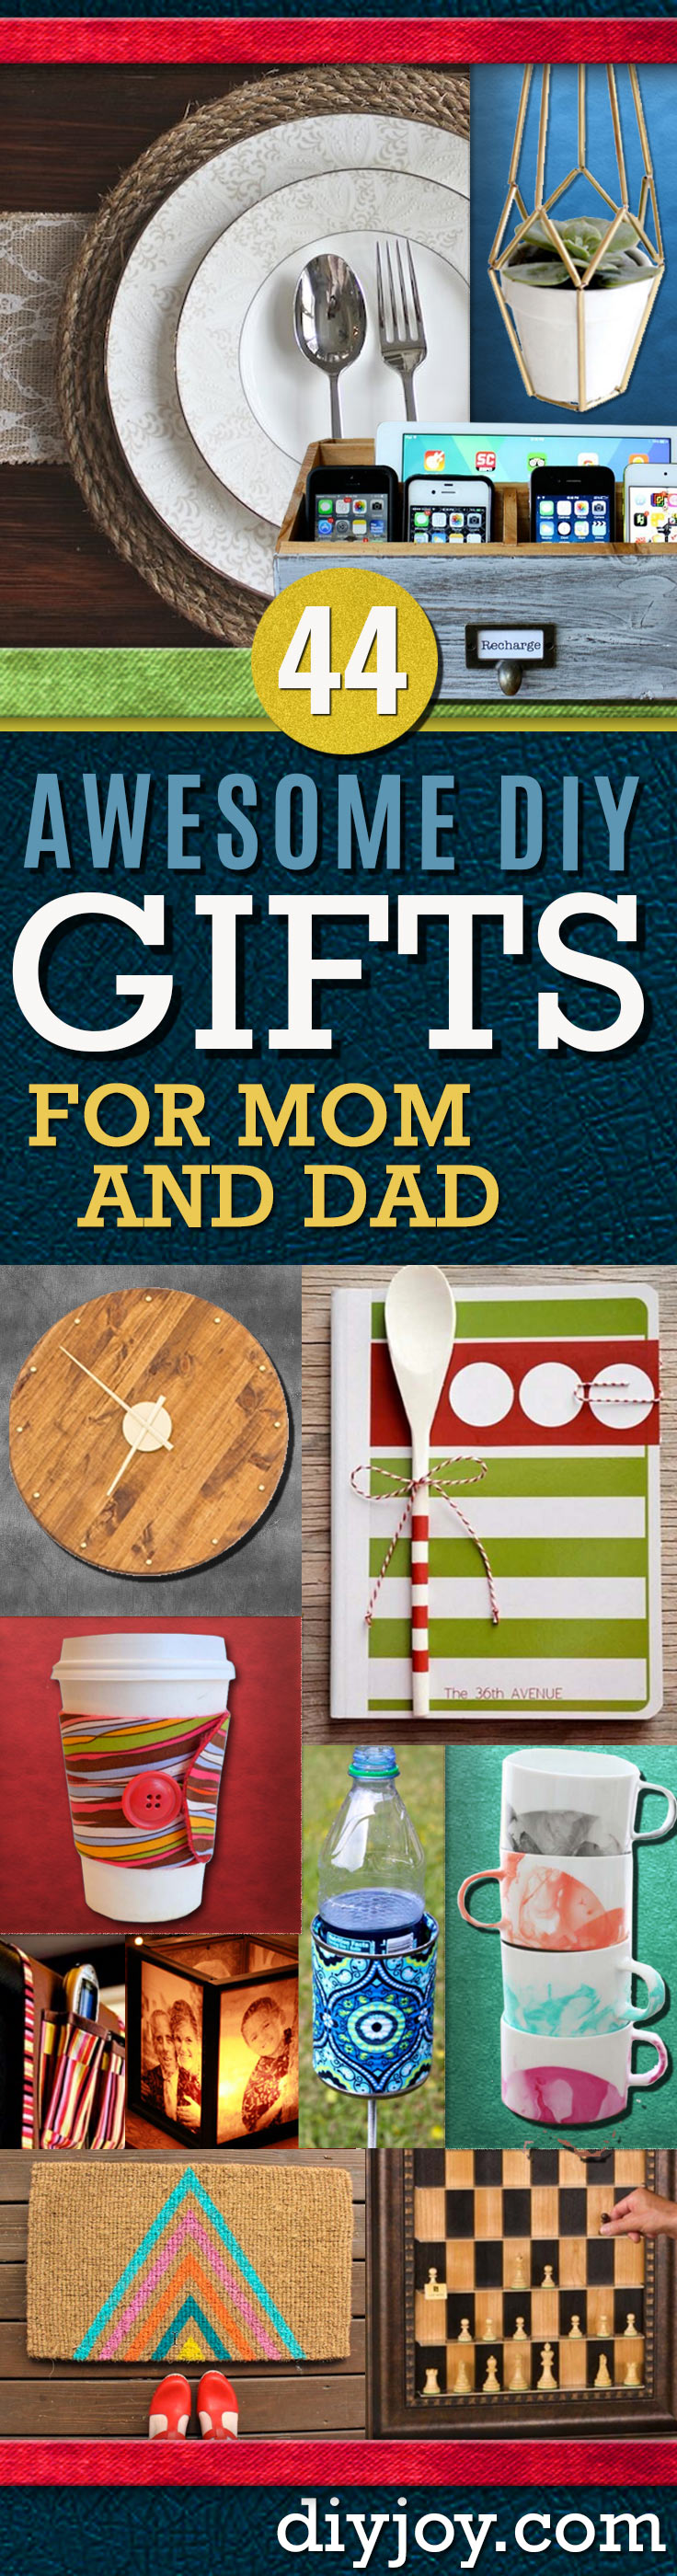 Christmas ideas gifts for boyfriend